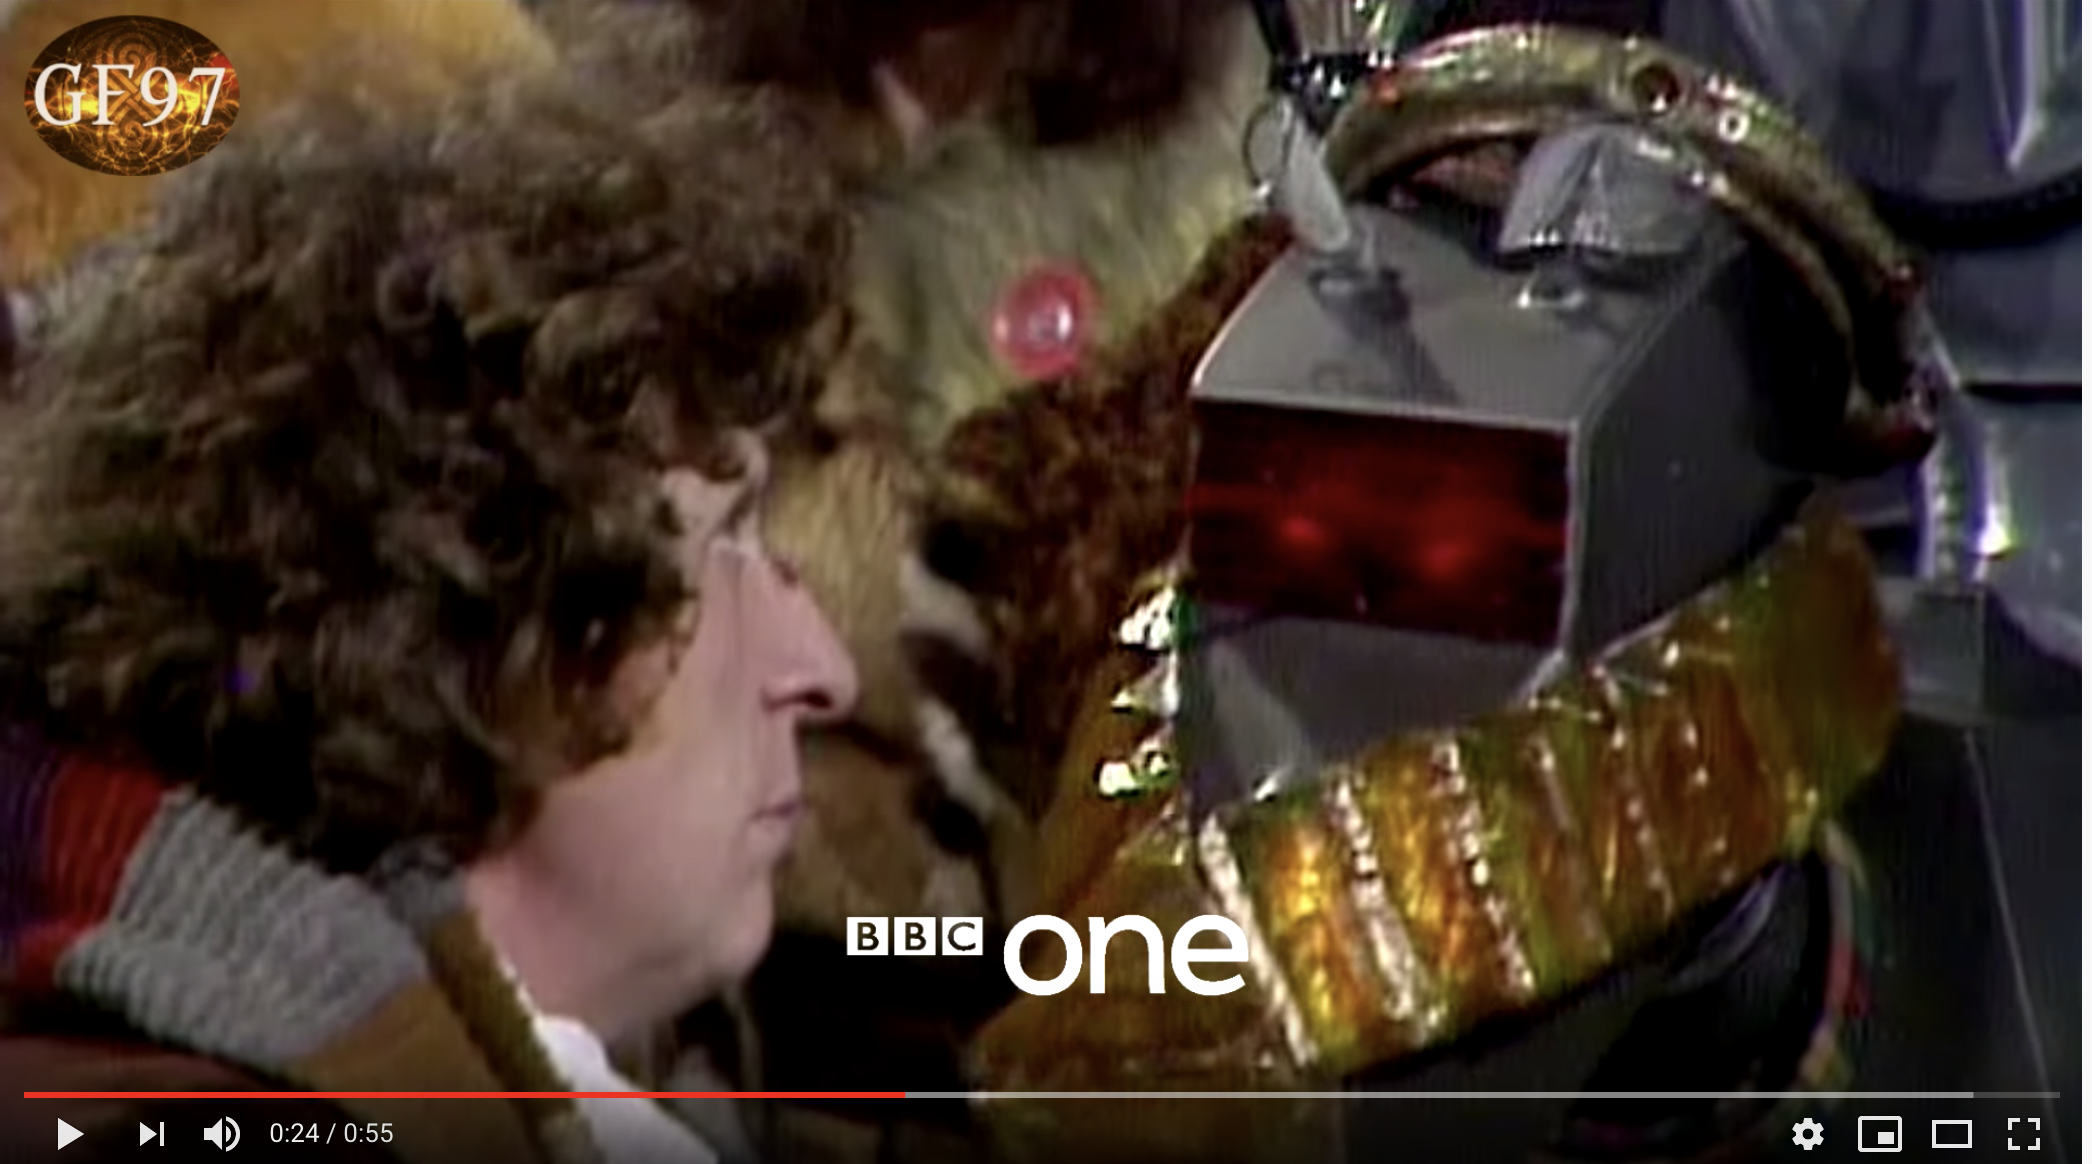 A screen shot from a Dr Who BBC fil showing Tom Baker as the doctor and K9